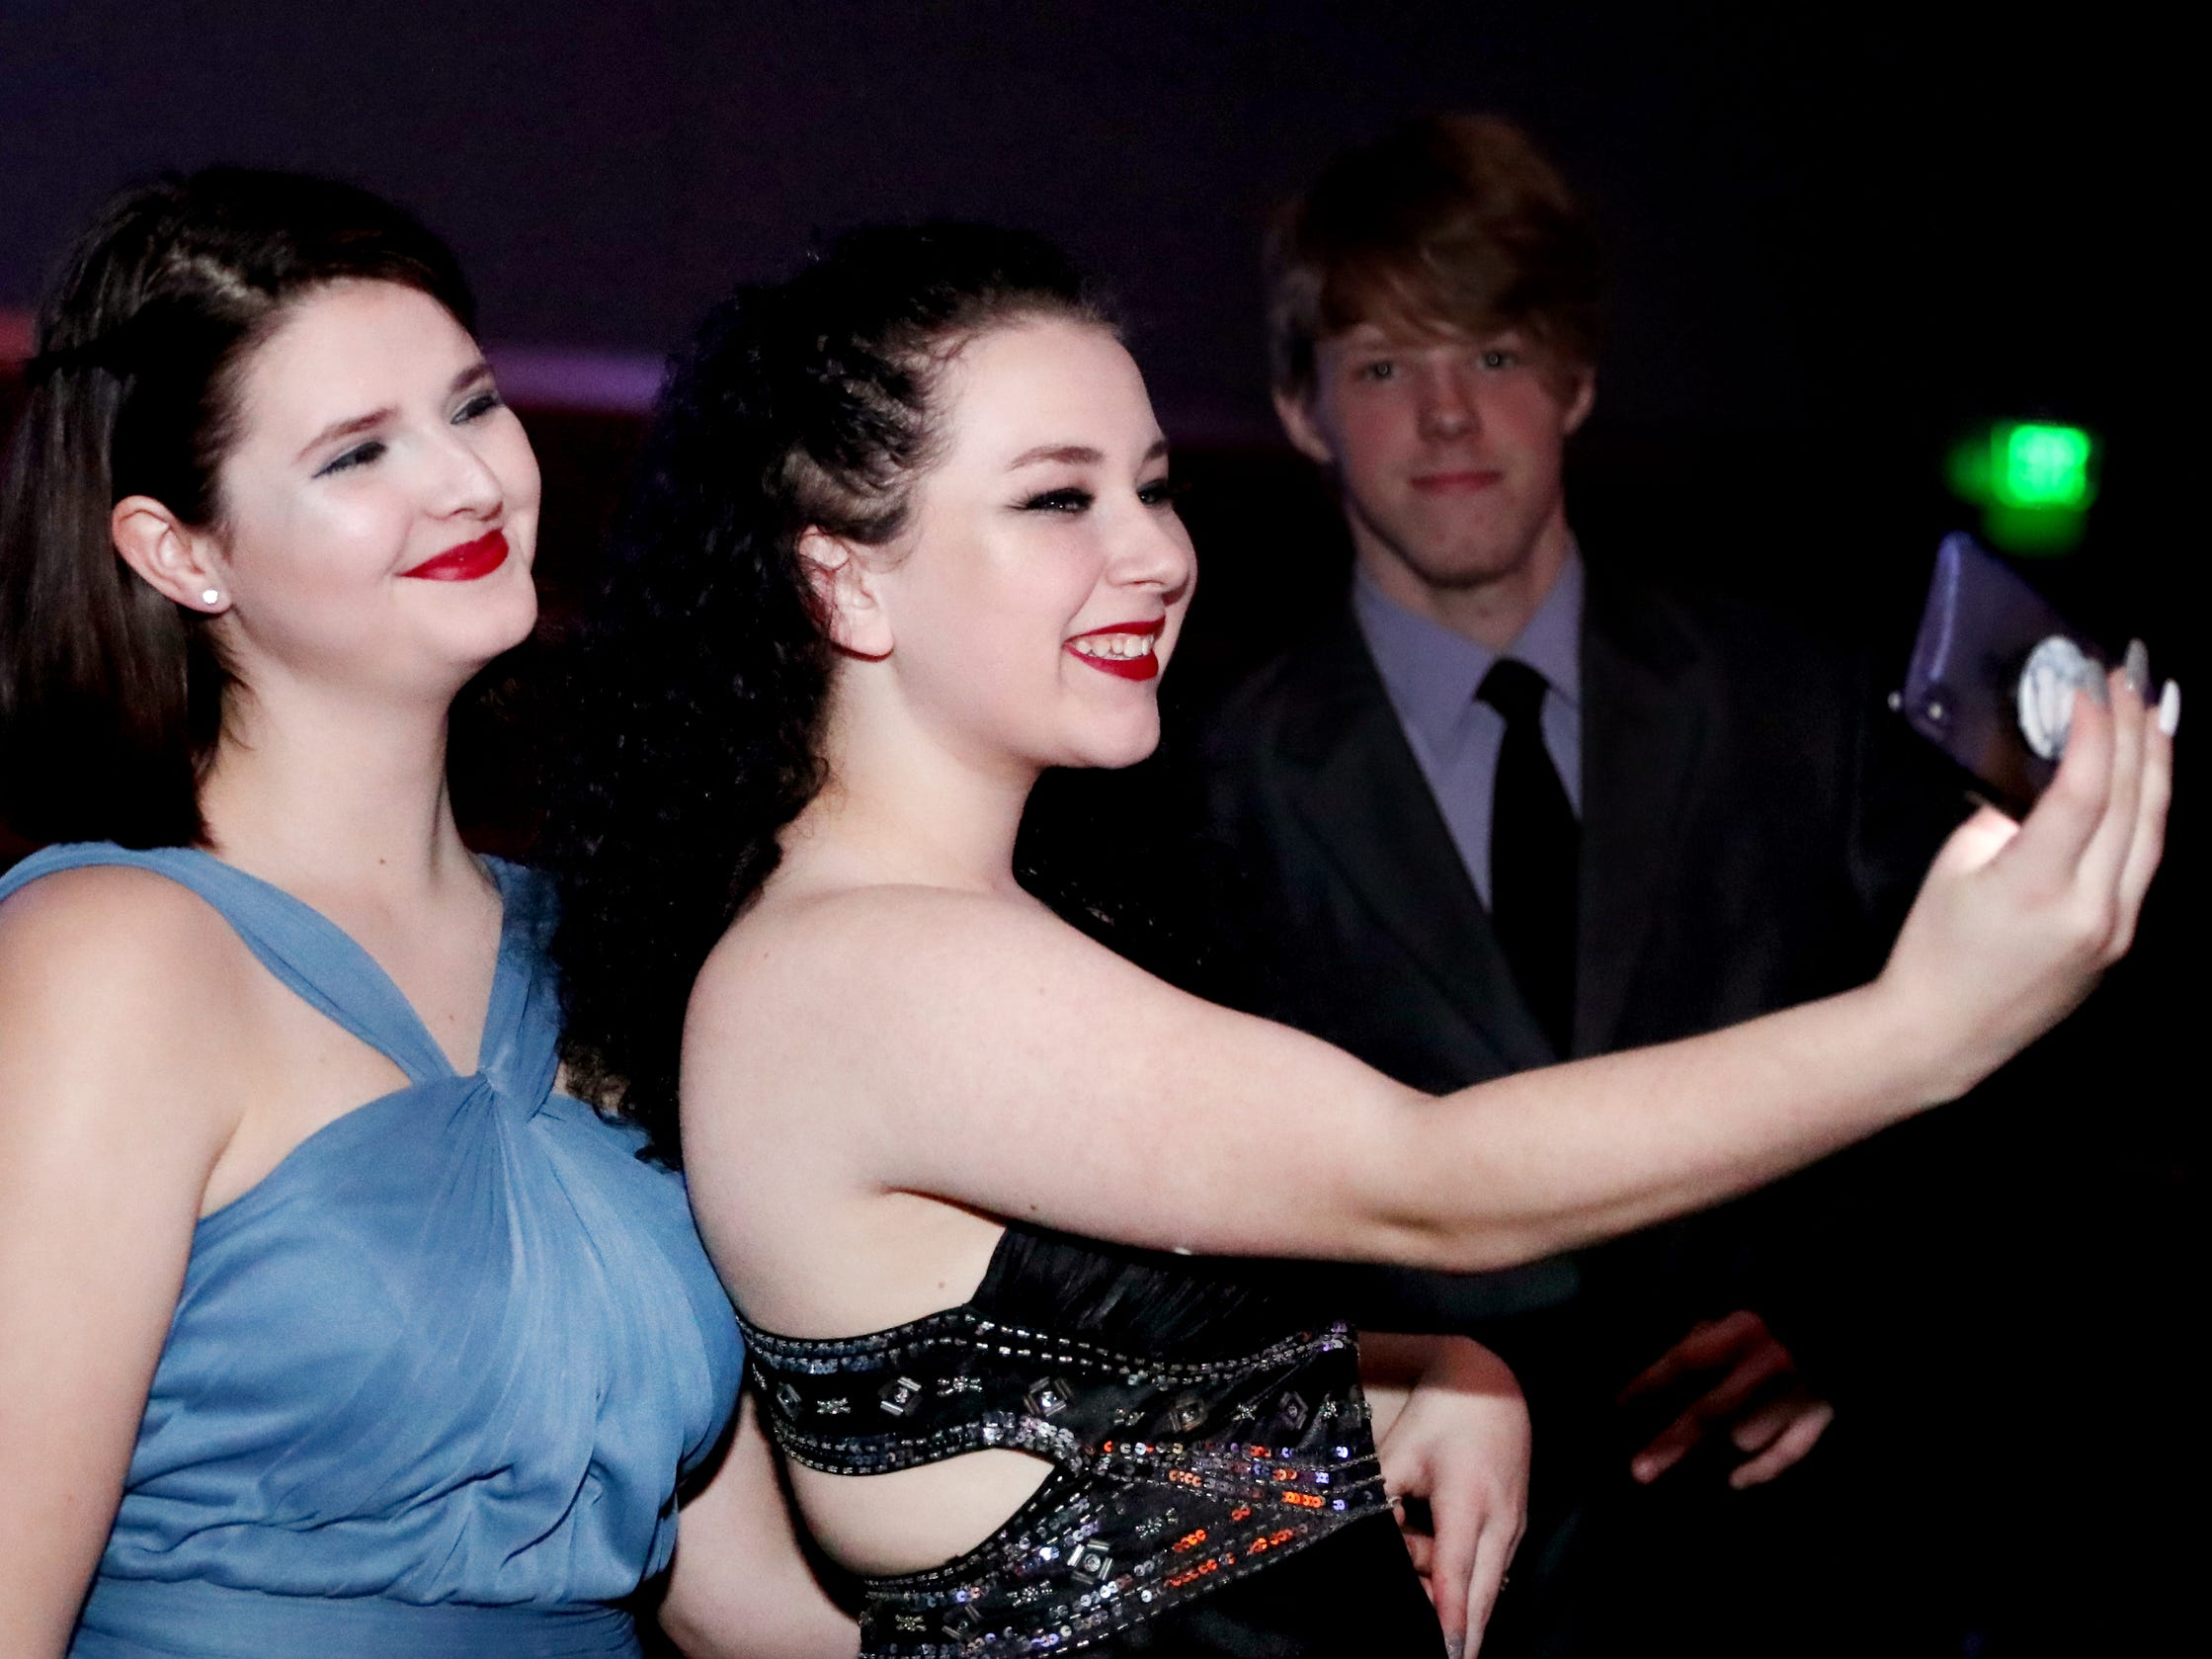 Kaitlyn Dees, left and Olivia Atwell, right take a selfie together at Blackman's prom held on Friday April 12, 2019, at MTSU.